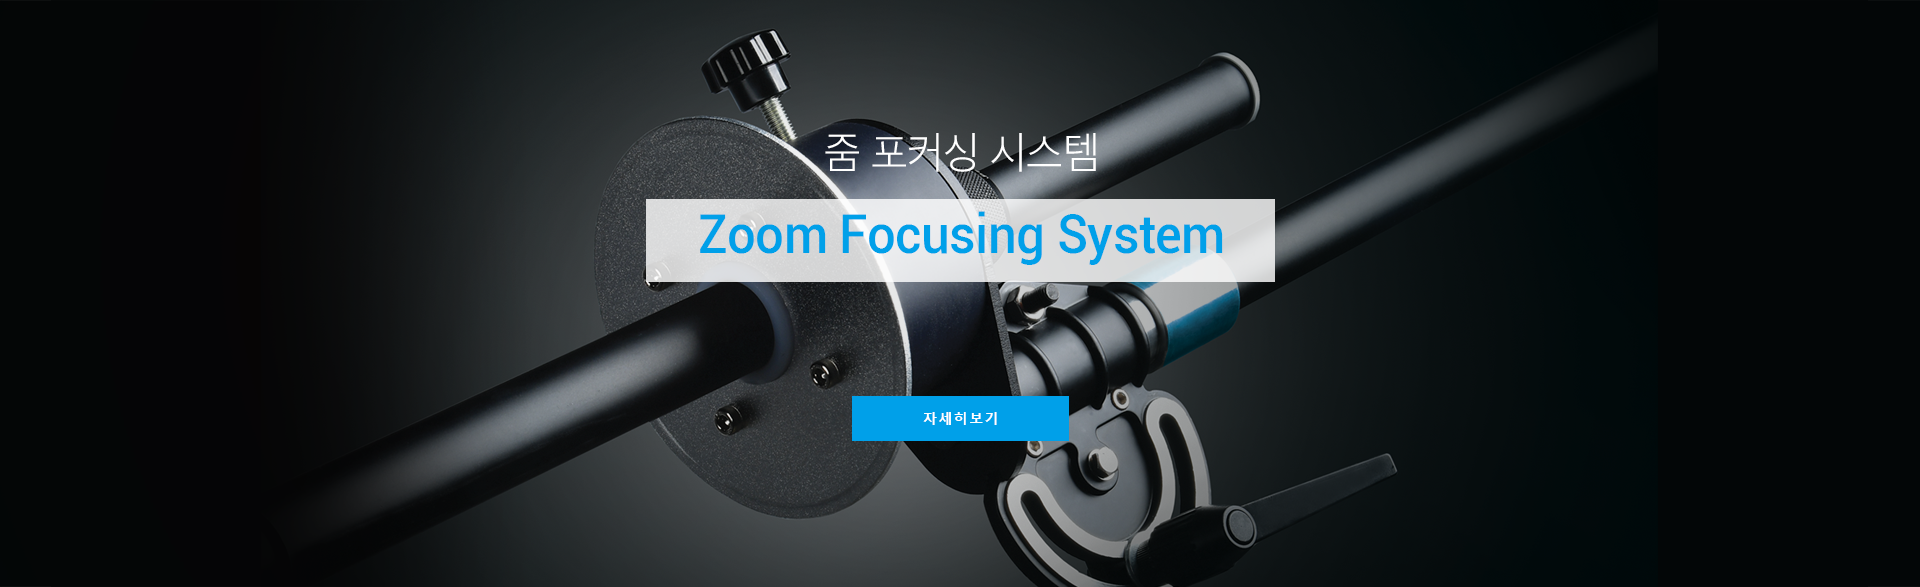 Zoom Focusing System